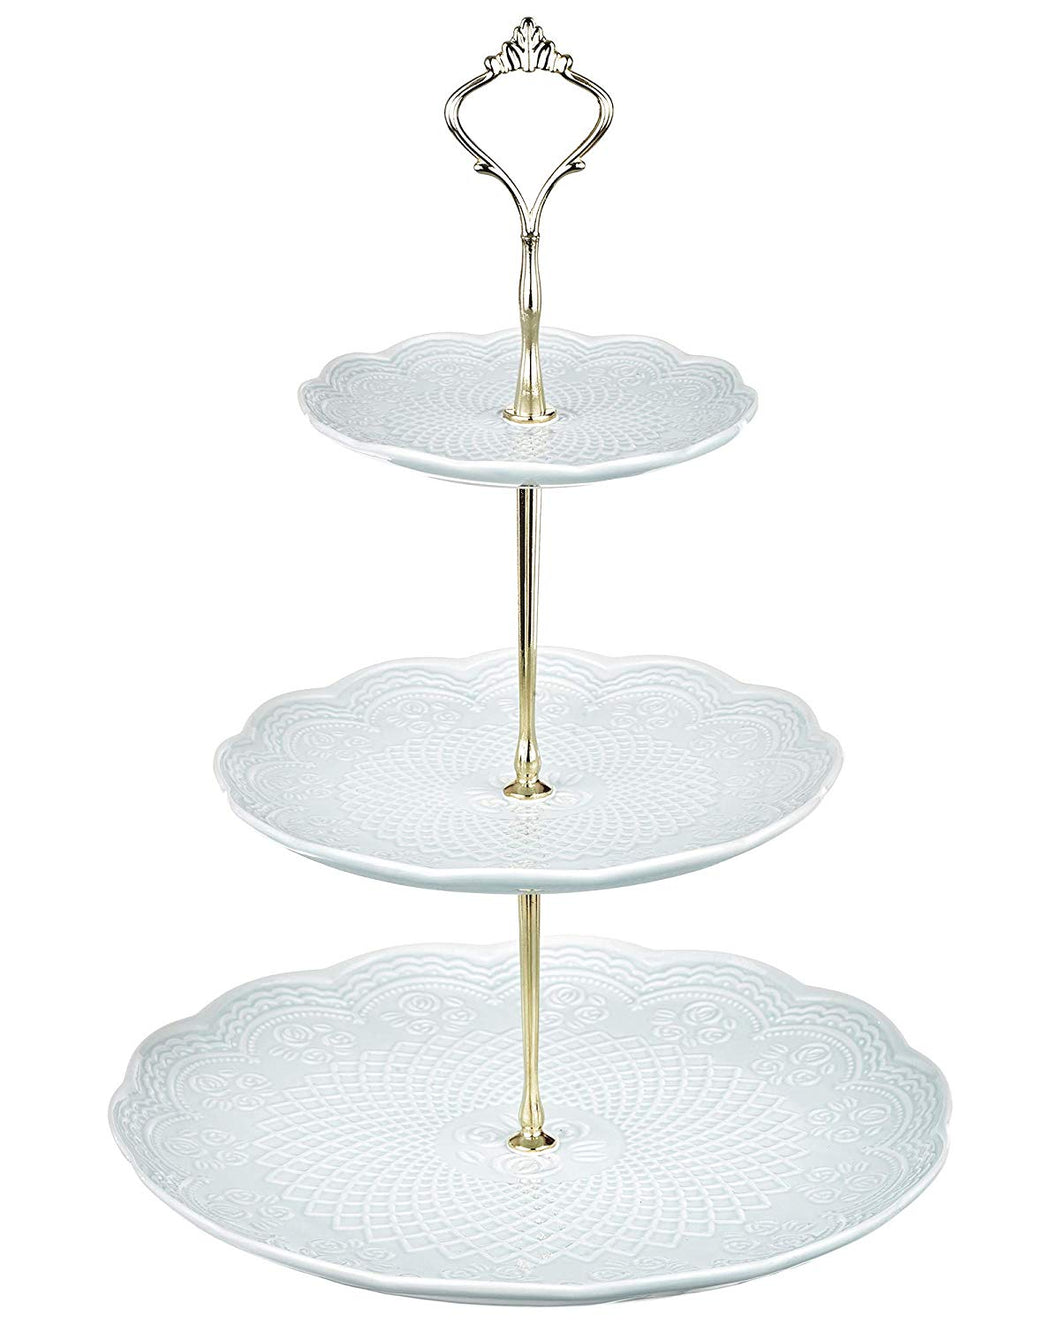 A-5 Light Blue Embossed Floral Cake Stand